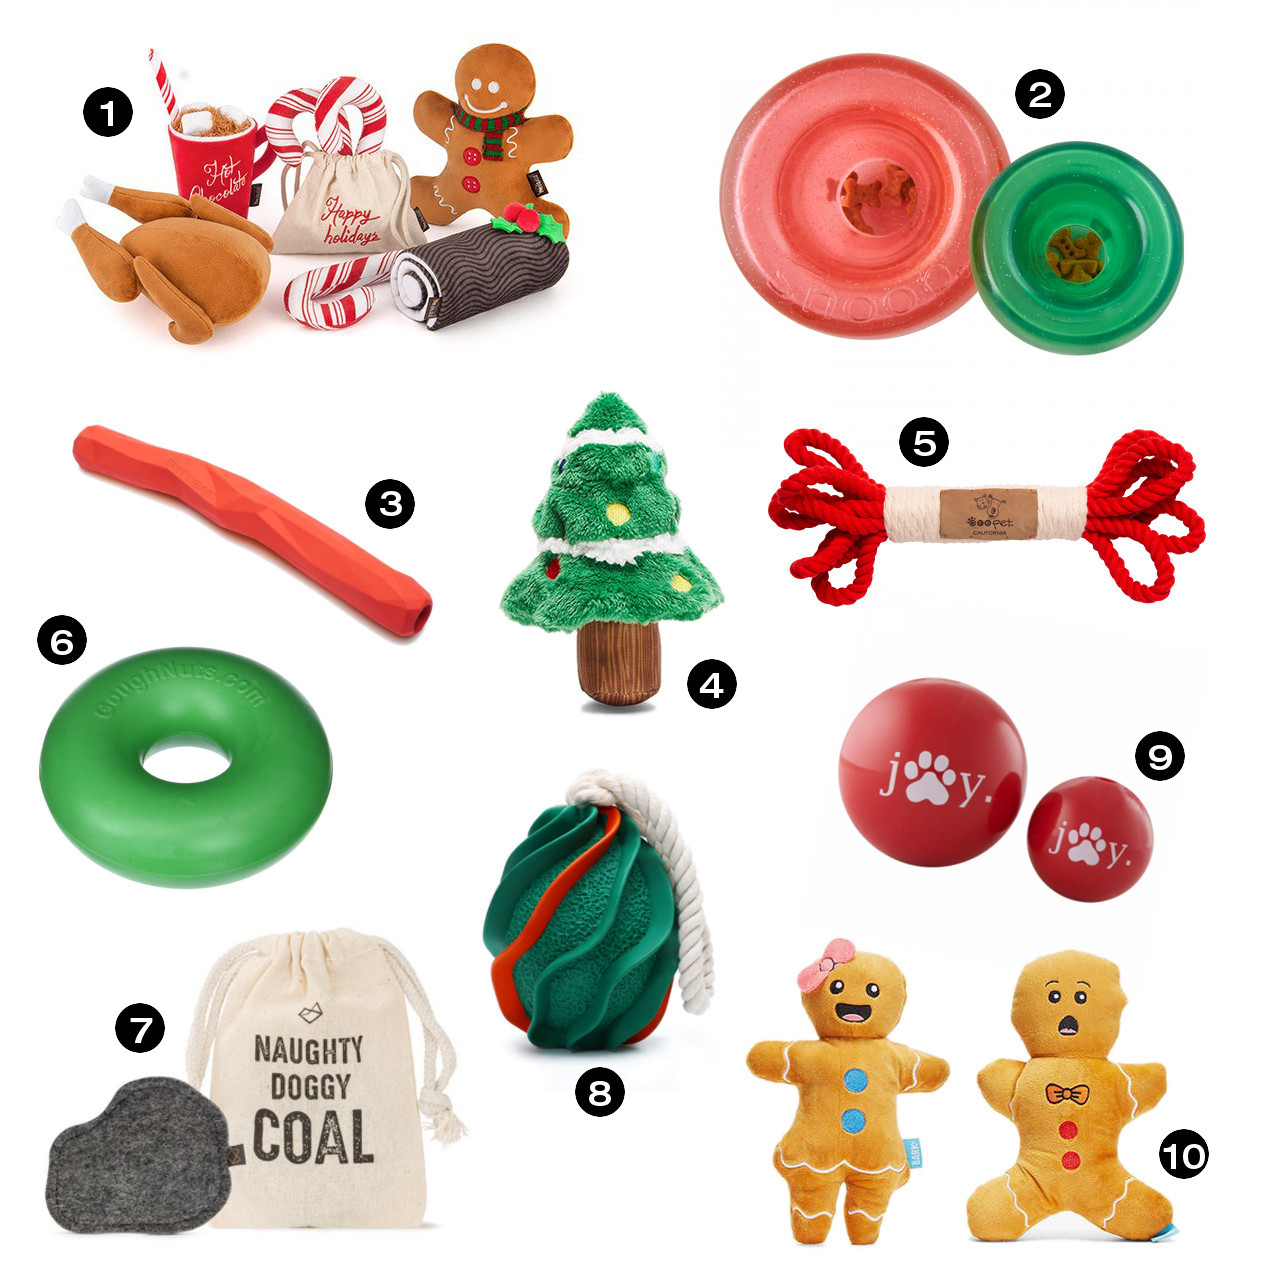 Dog Milk Holiday Gift Guide: Toys! Toys! Toys!